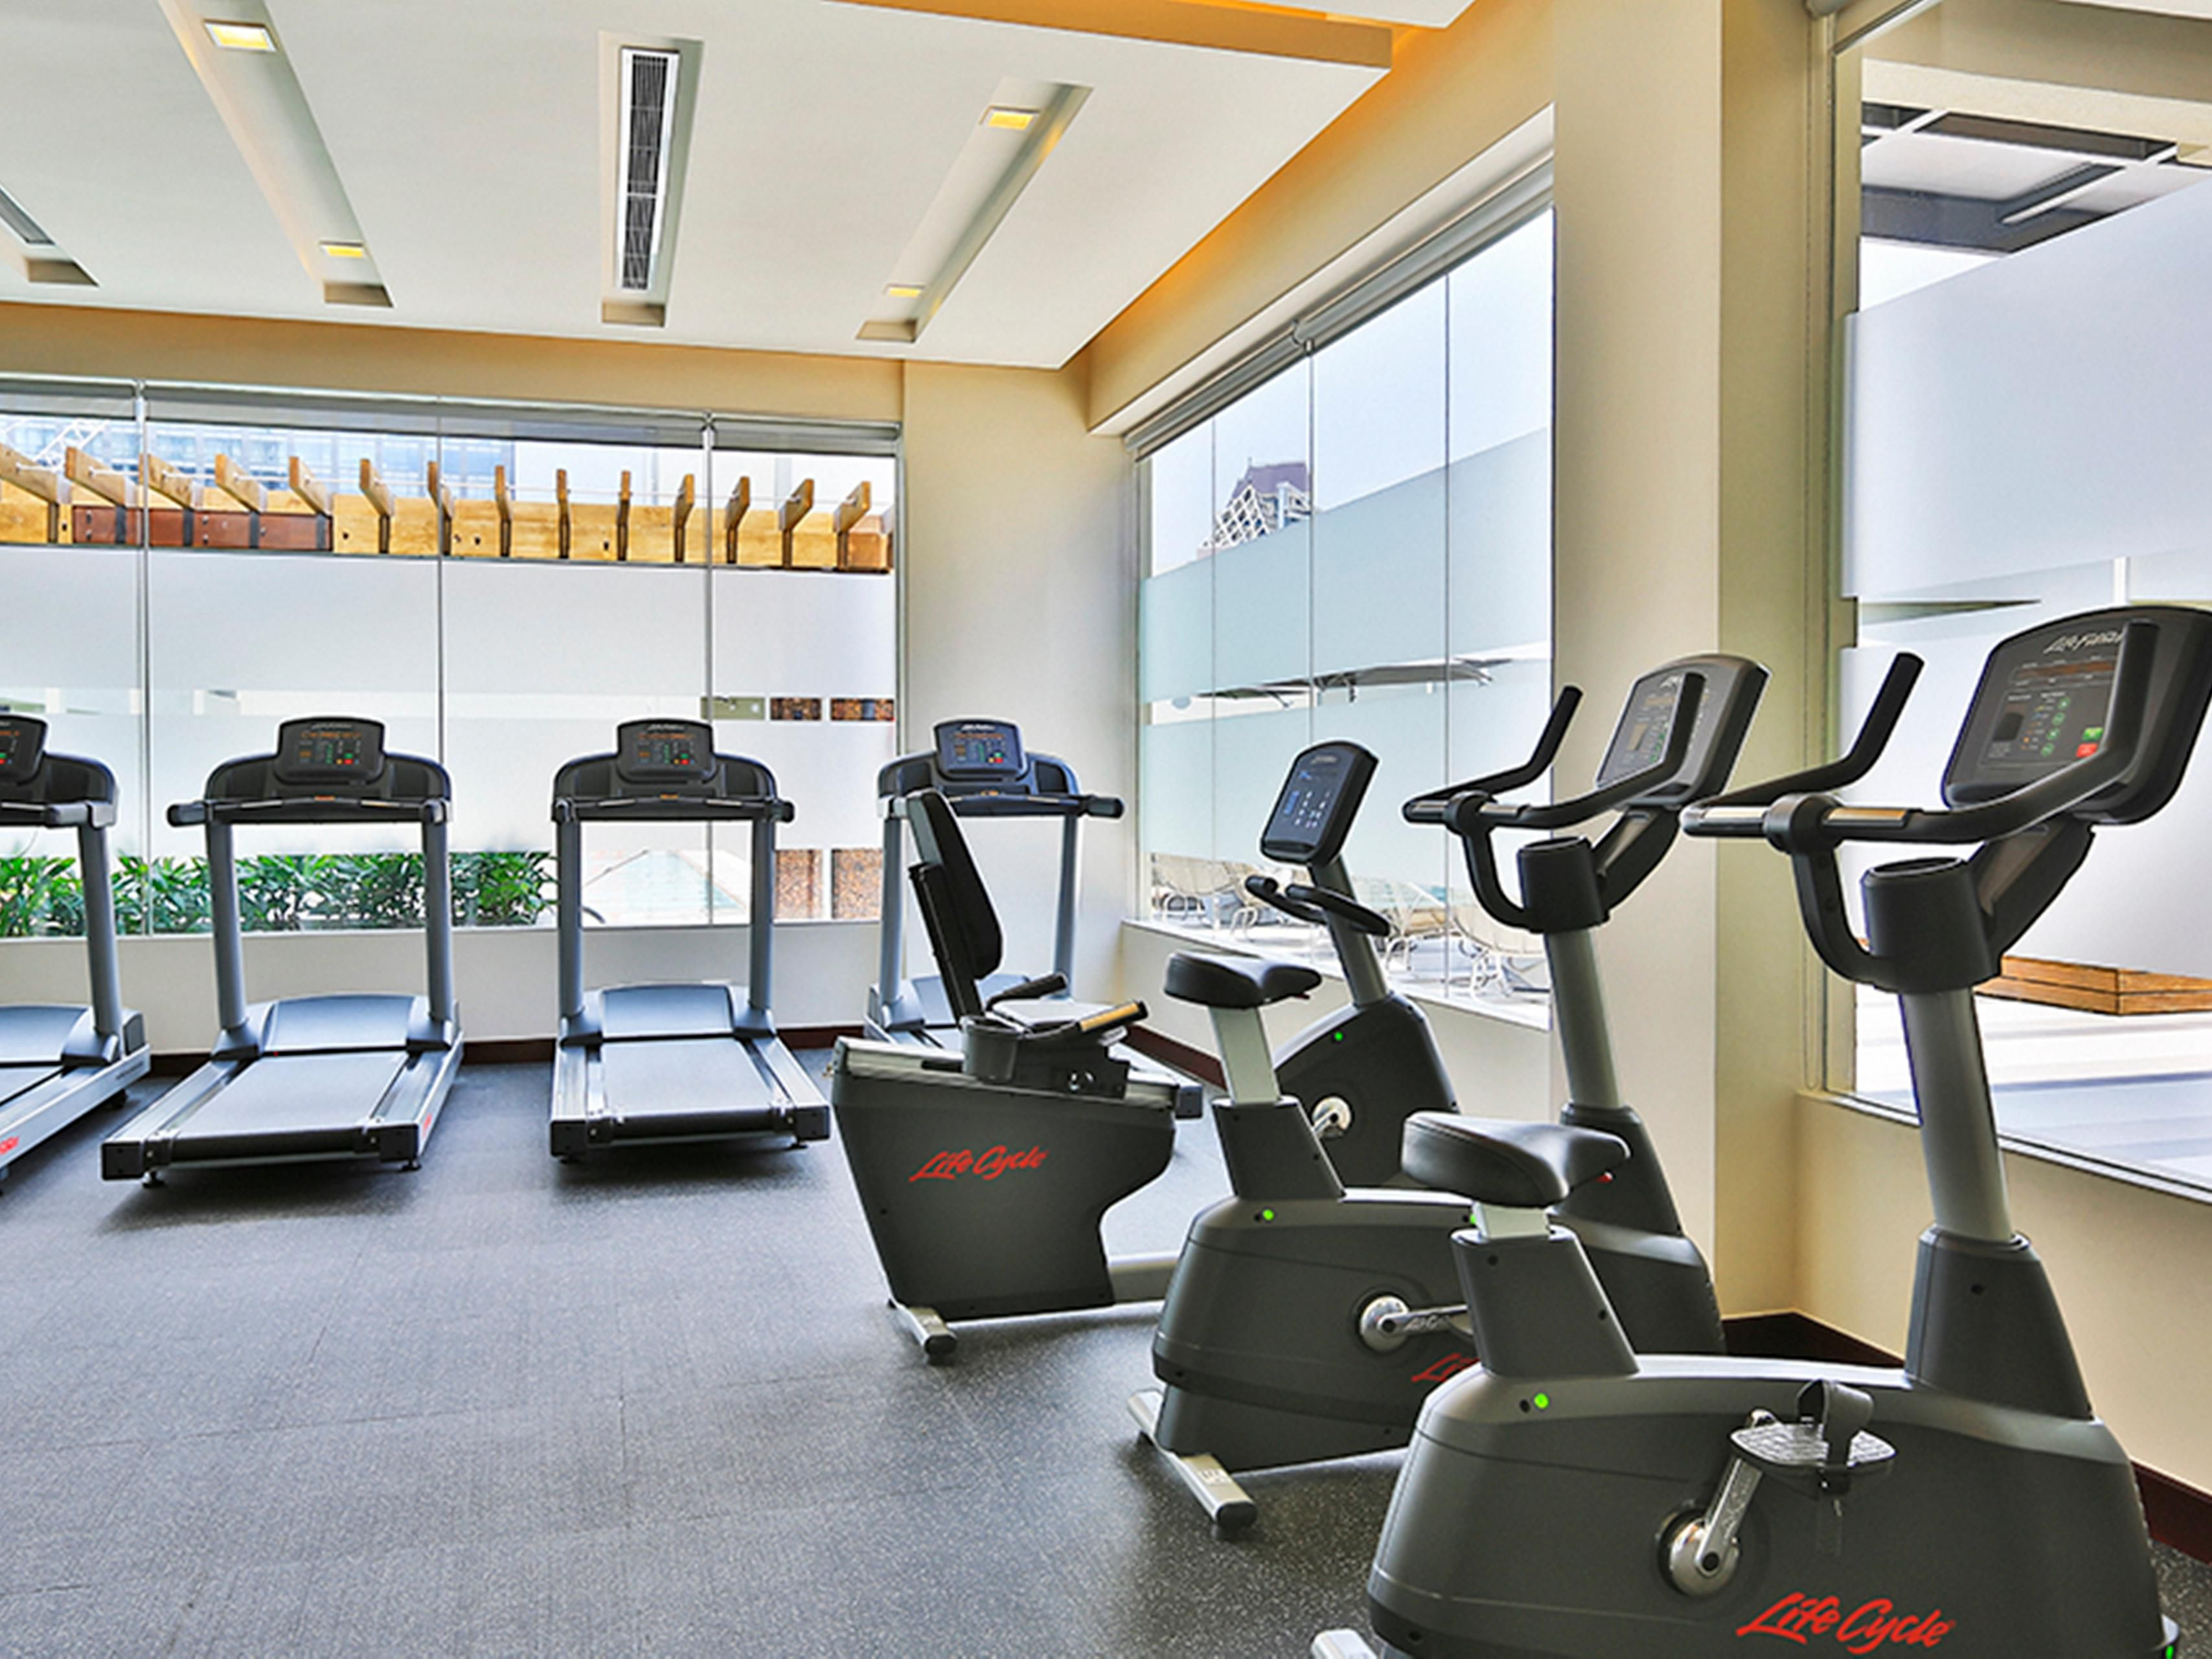 Our fully-equipped Fitness Center is located at the roof deck